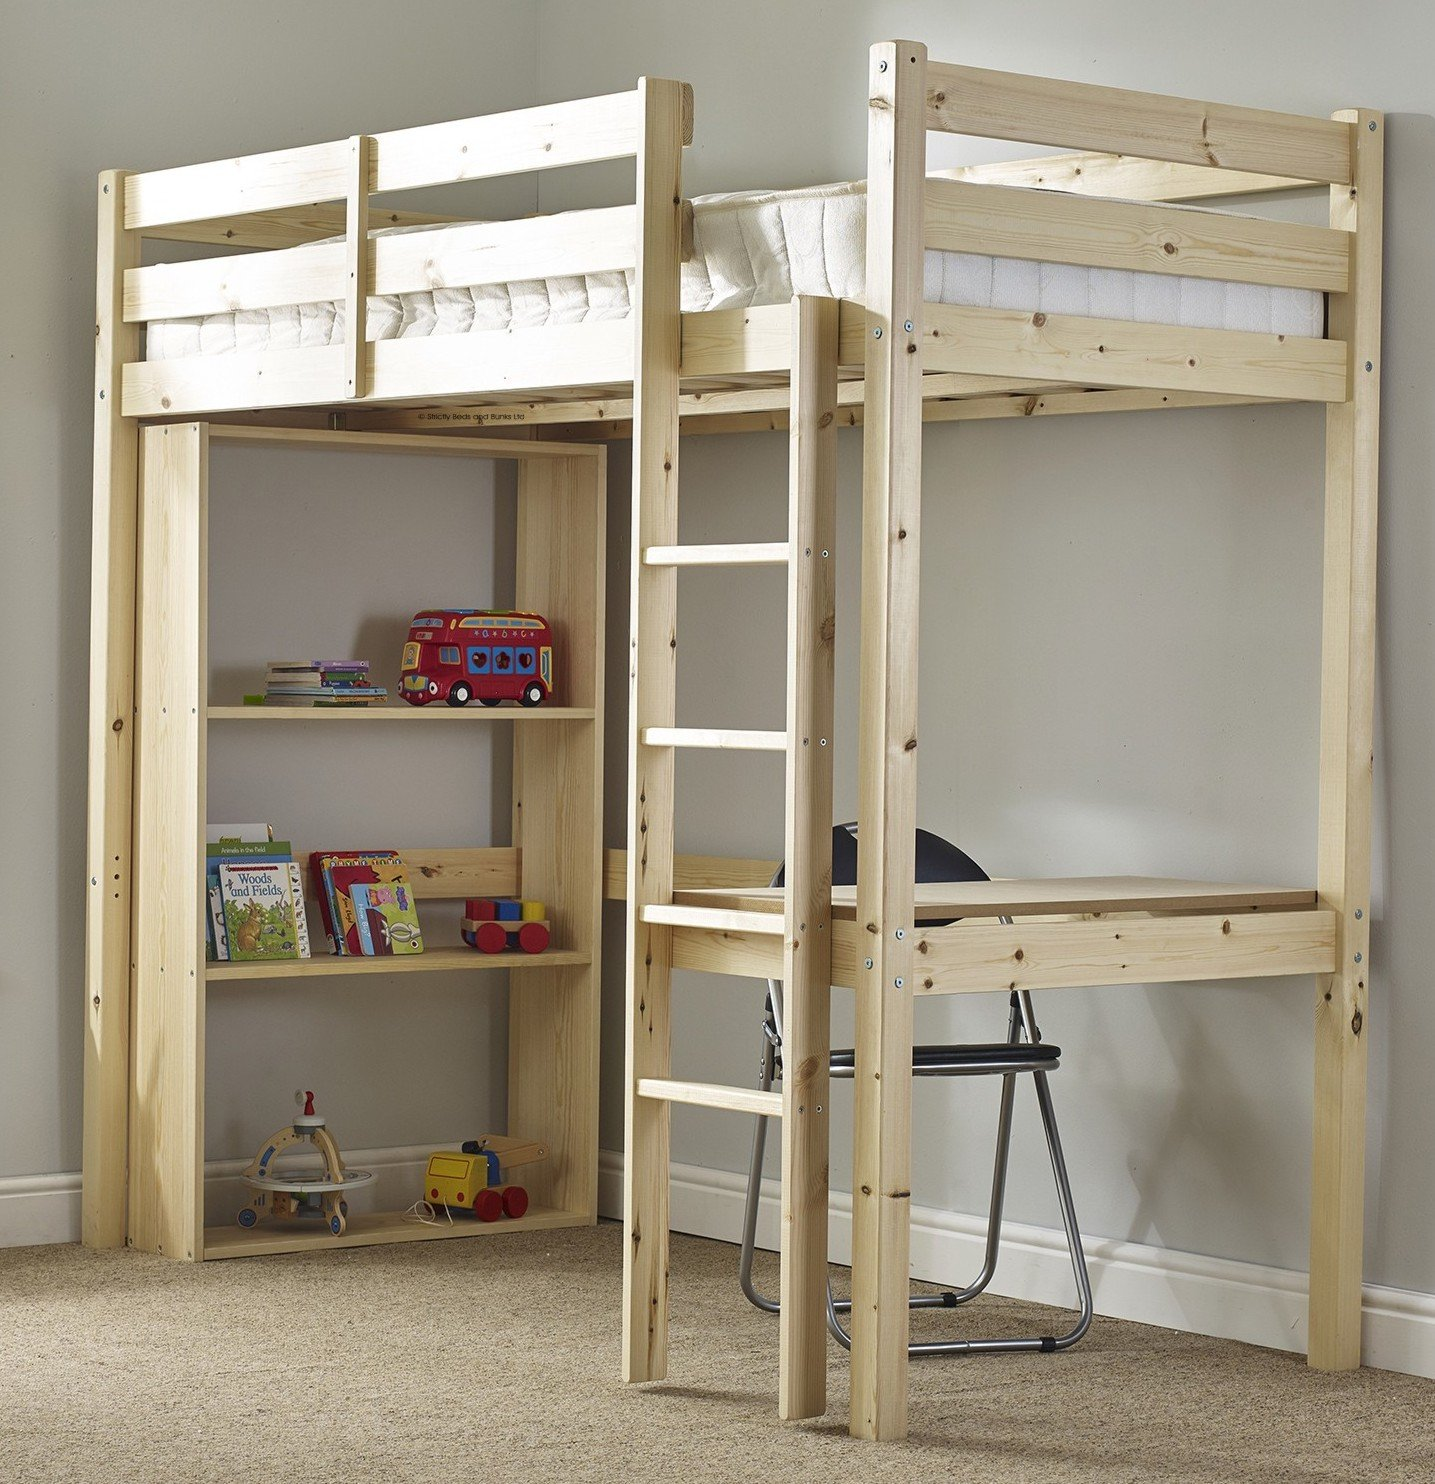 Study Bunk Bed   3ft Single Work Station Bunkbed With Table, Chair And  Bookcase: Amazon.co.uk: Kitchen U0026 Home